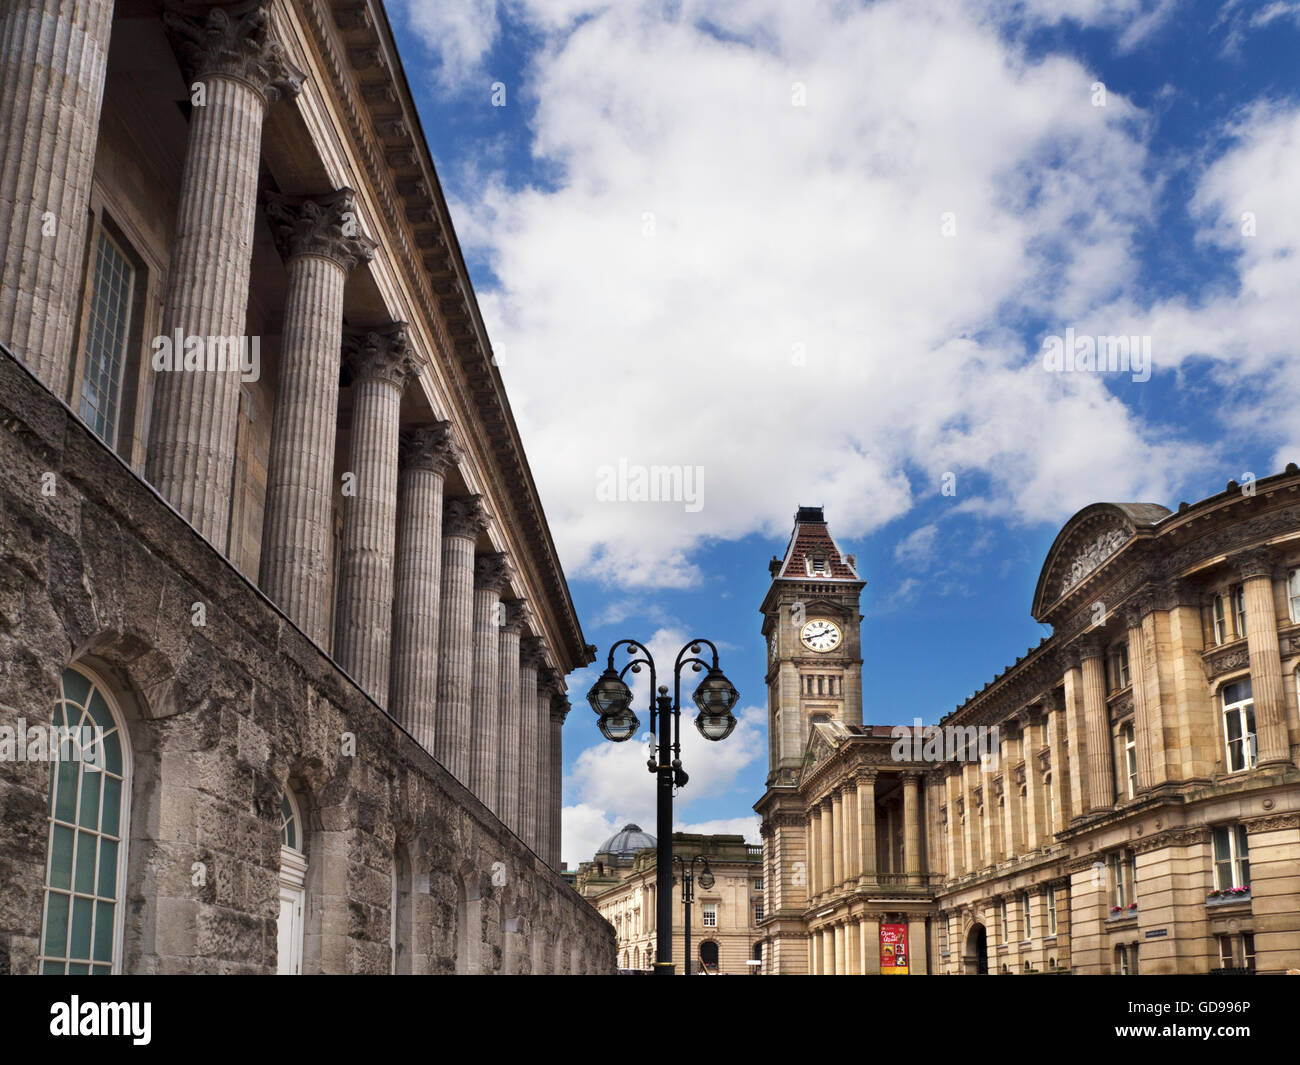 Town Hall and Council House Victoria Square Birmingham West Midlands England - Stock Image